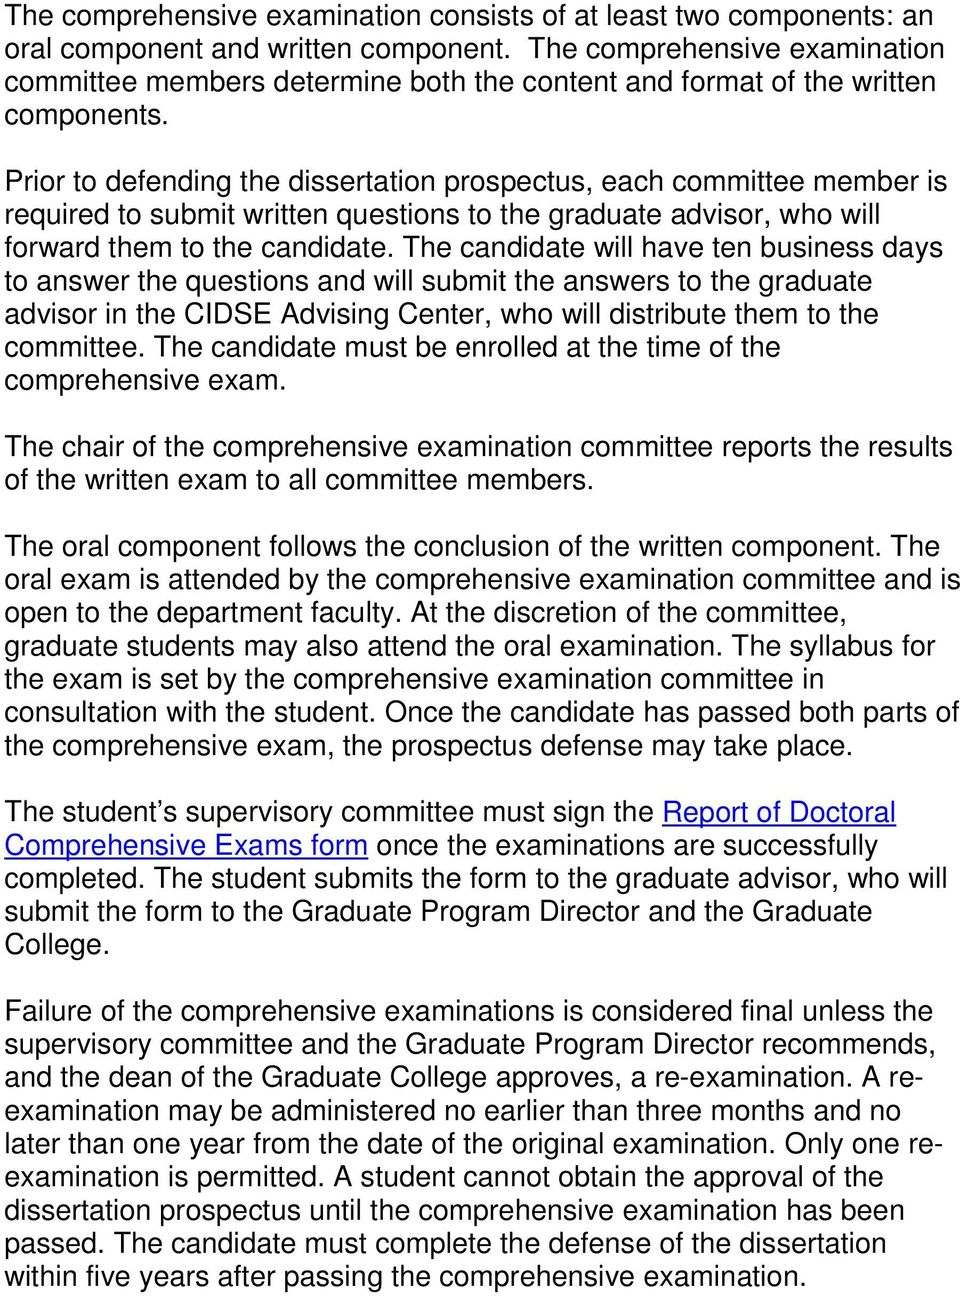 Prior to defending the dissertation prospectus, each committee member is required to submit written questions to the graduate advisor, who will forward them to the candidate.